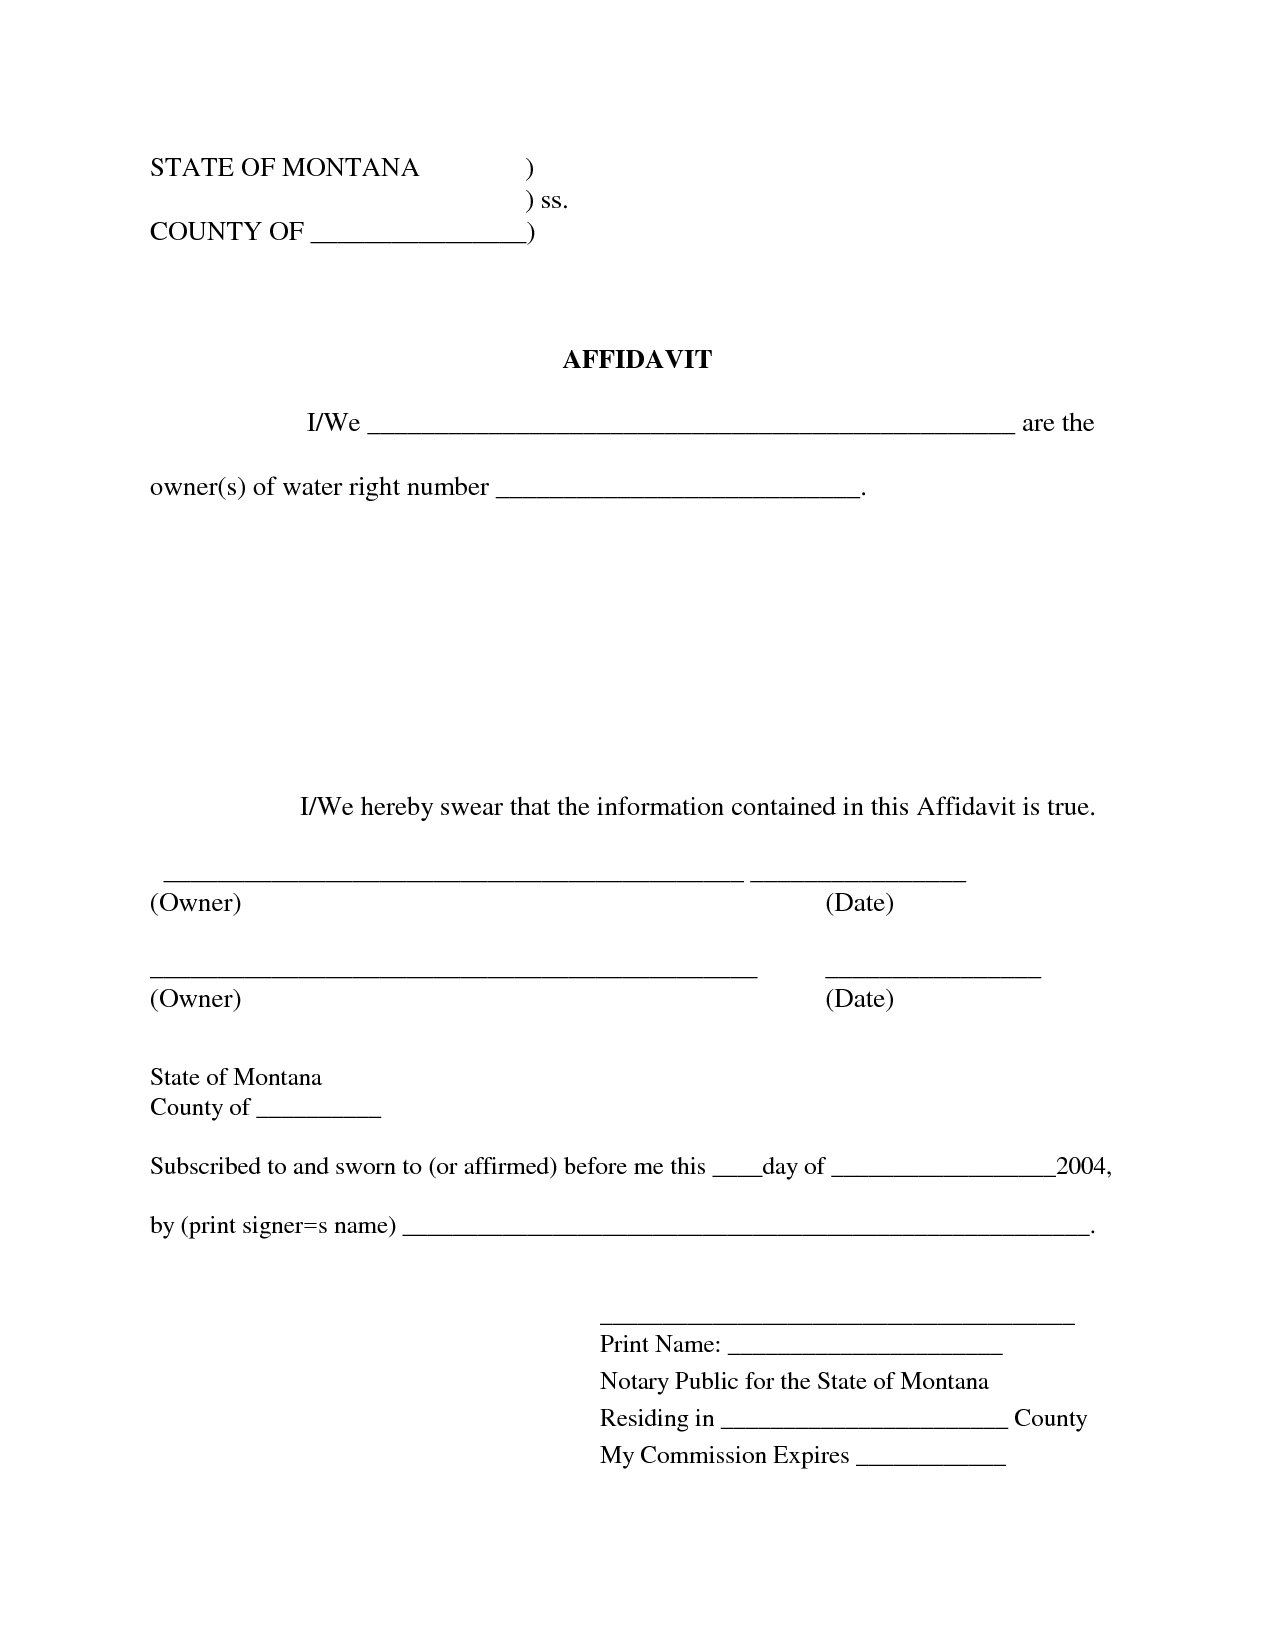 Free blank affidavit form blank sworn affidavit forms kiss68one free blank affidavit form blank sworn affidavit forms thecheapjerseys